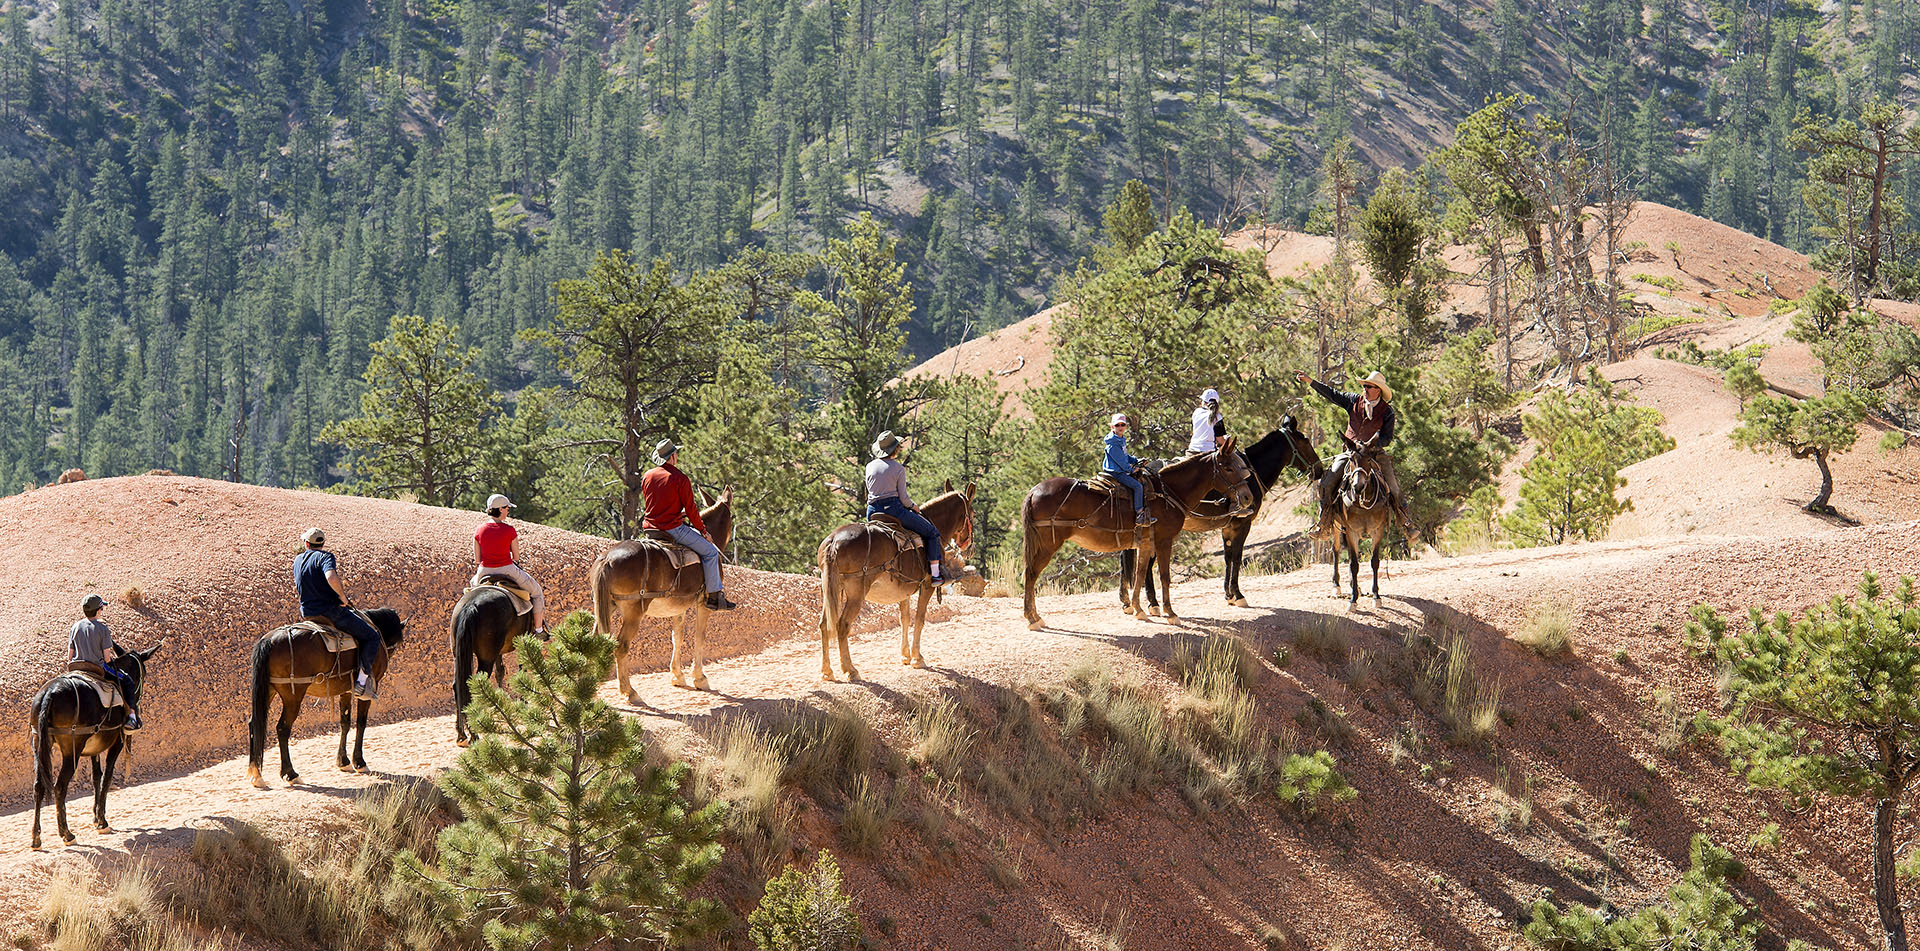 Guests horseback riding in Grand Canyon